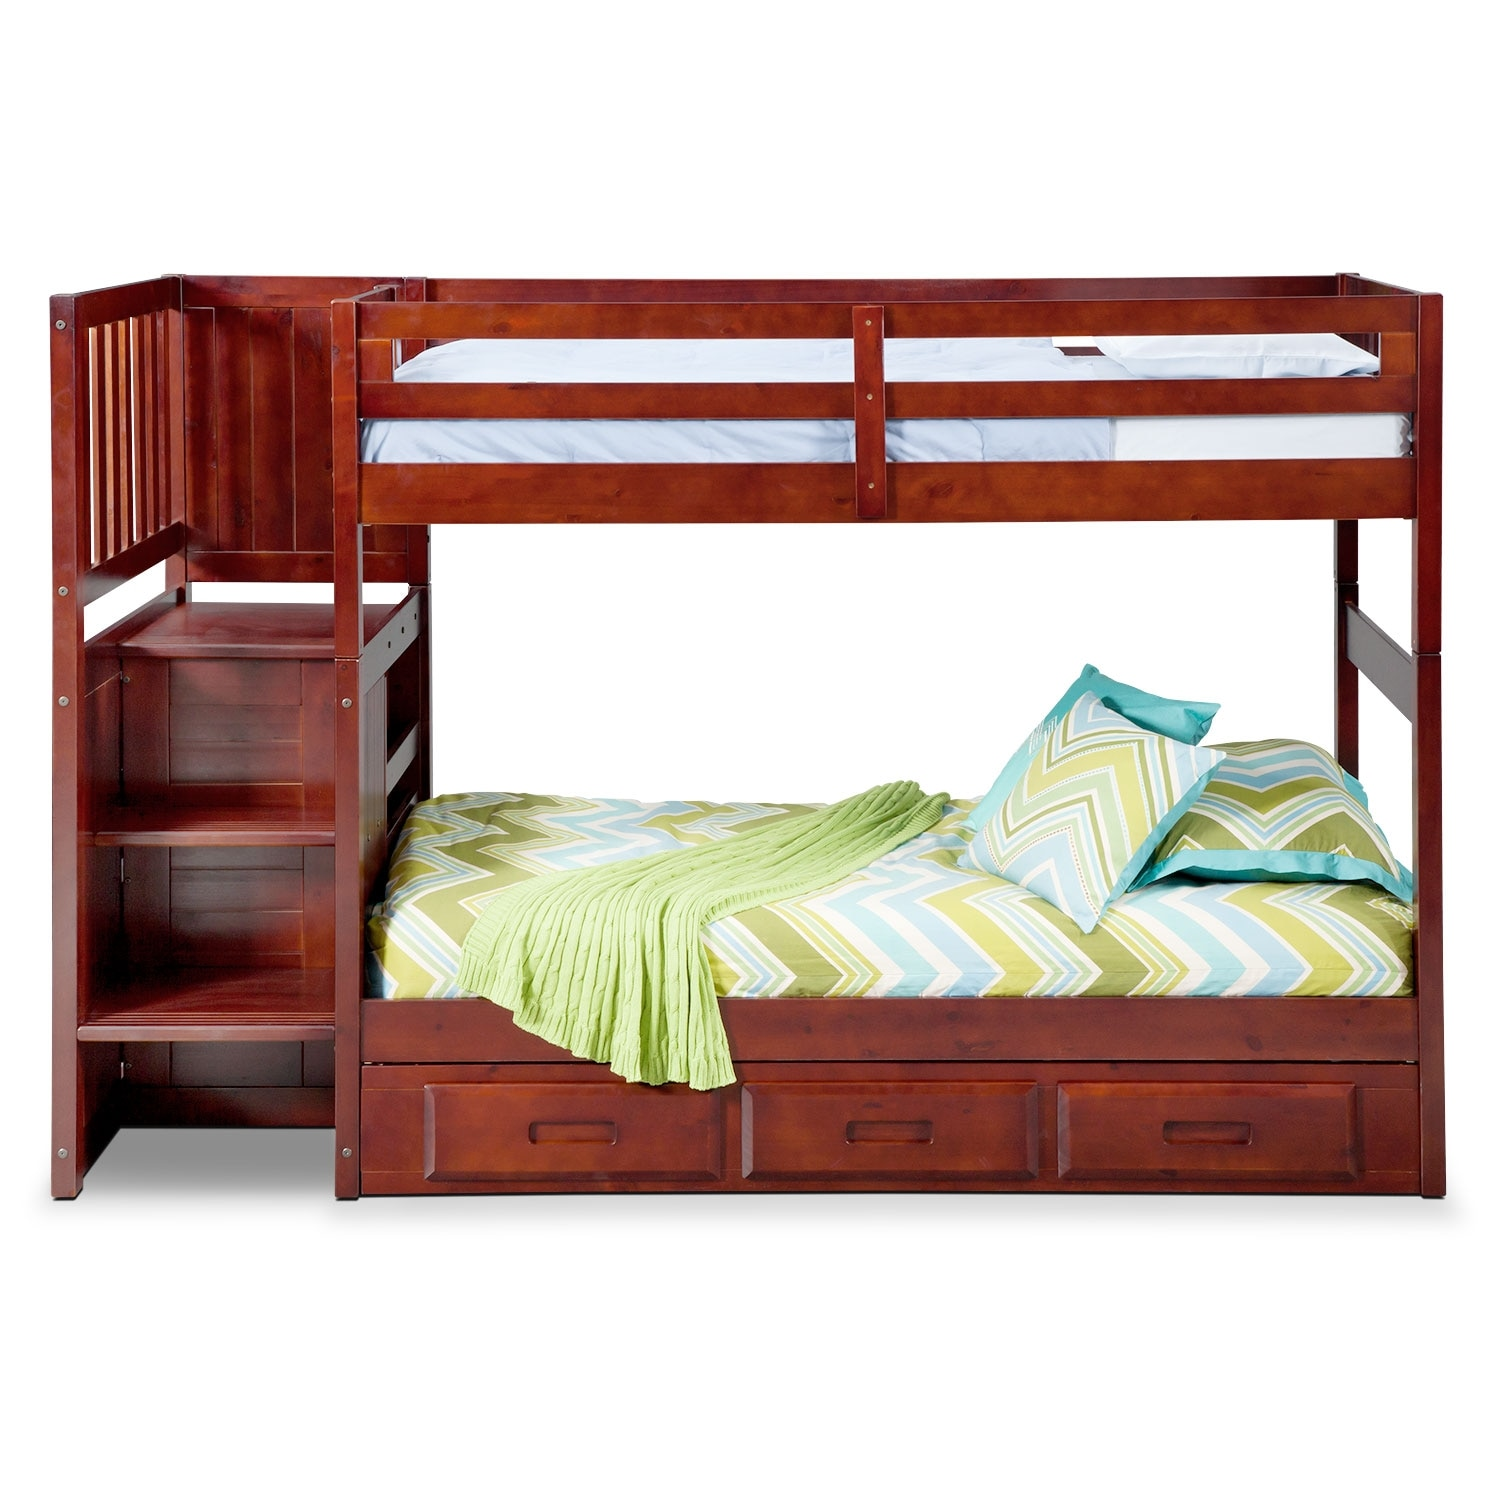 Bed Over Stair Box Google Search: Ranger Twin Over Twin Bunk Bed With Storage Stairs